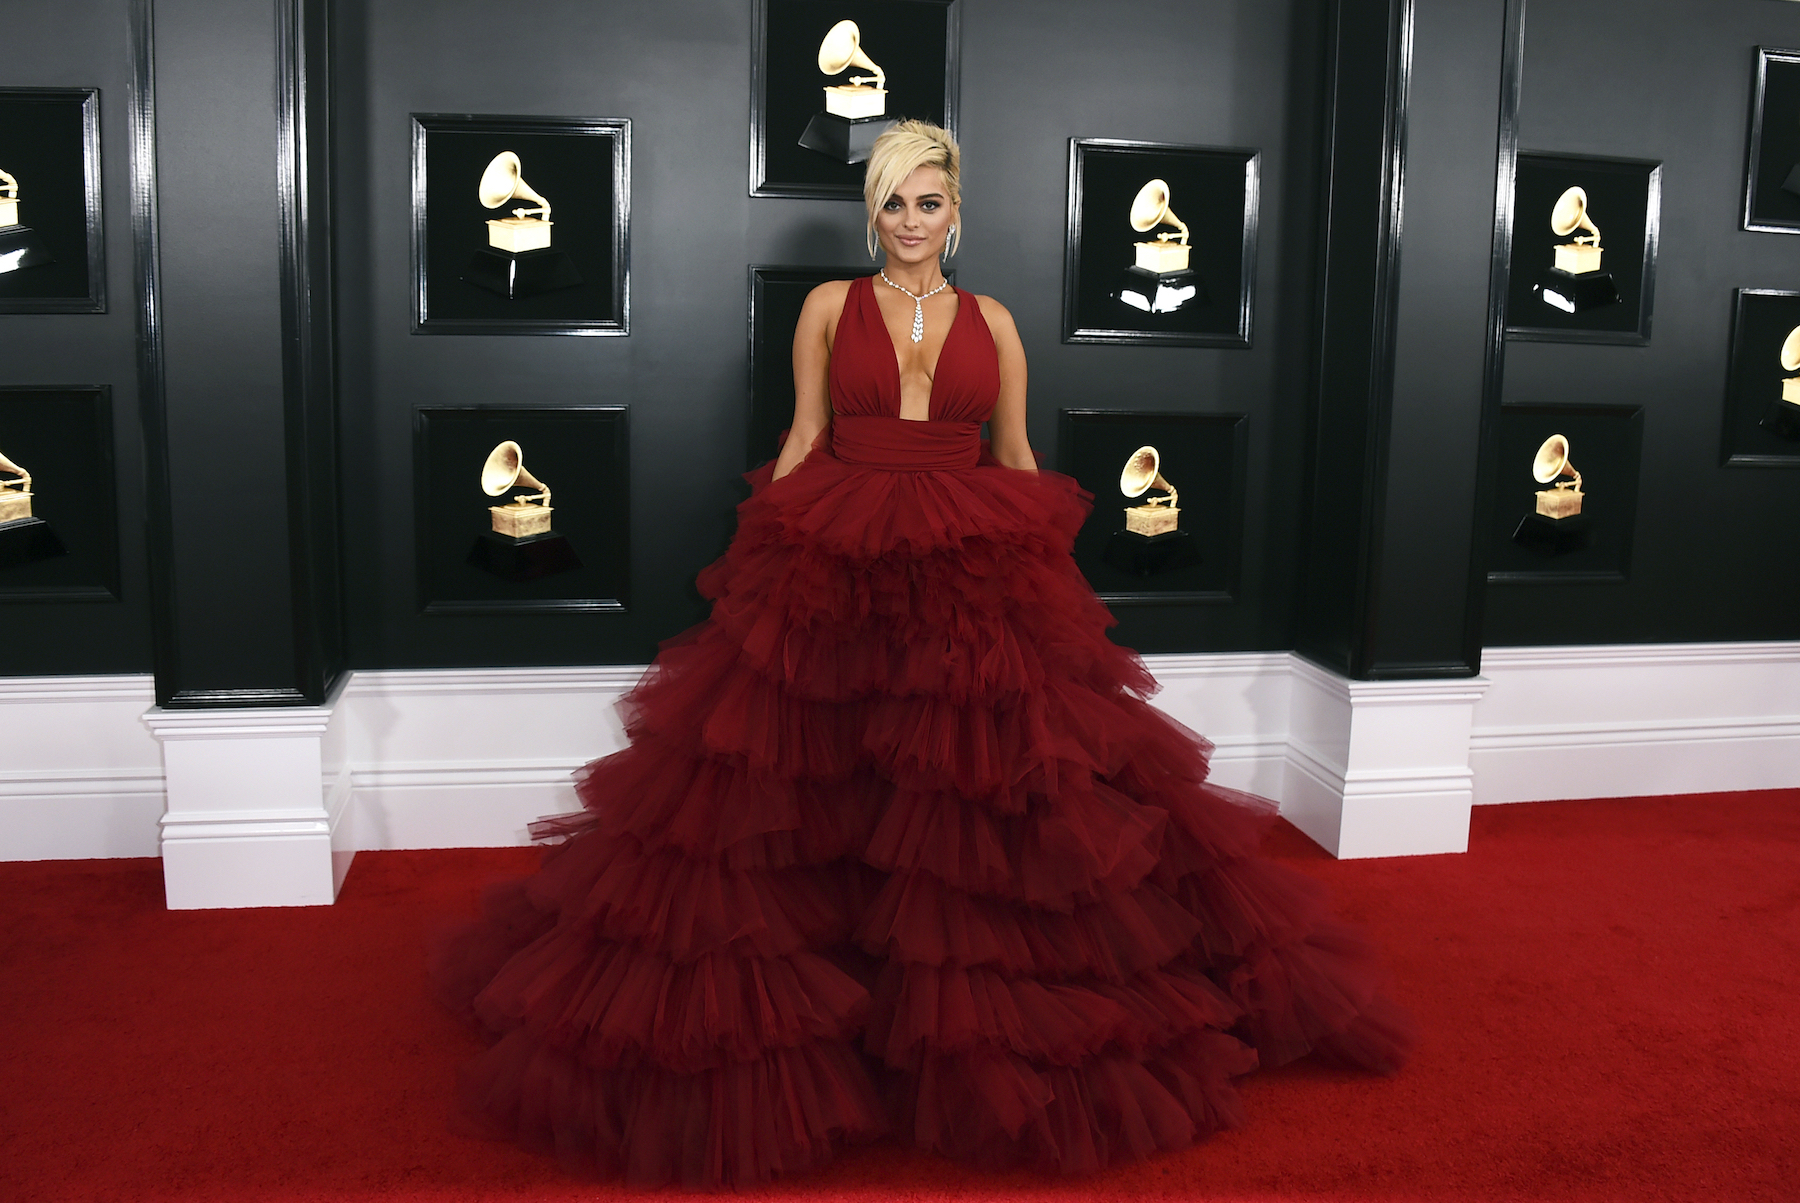 "<div class=""meta image-caption""><div class=""origin-logo origin-image ap""><span>AP</span></div><span class=""caption-text"">Bebe Rexha arrives at the 61st annual Grammy Awards at the Staples Center on Sunday, Feb. 10, 2019, in Los Angeles. (Jordan Strauss/Invision/AP)</span></div>"